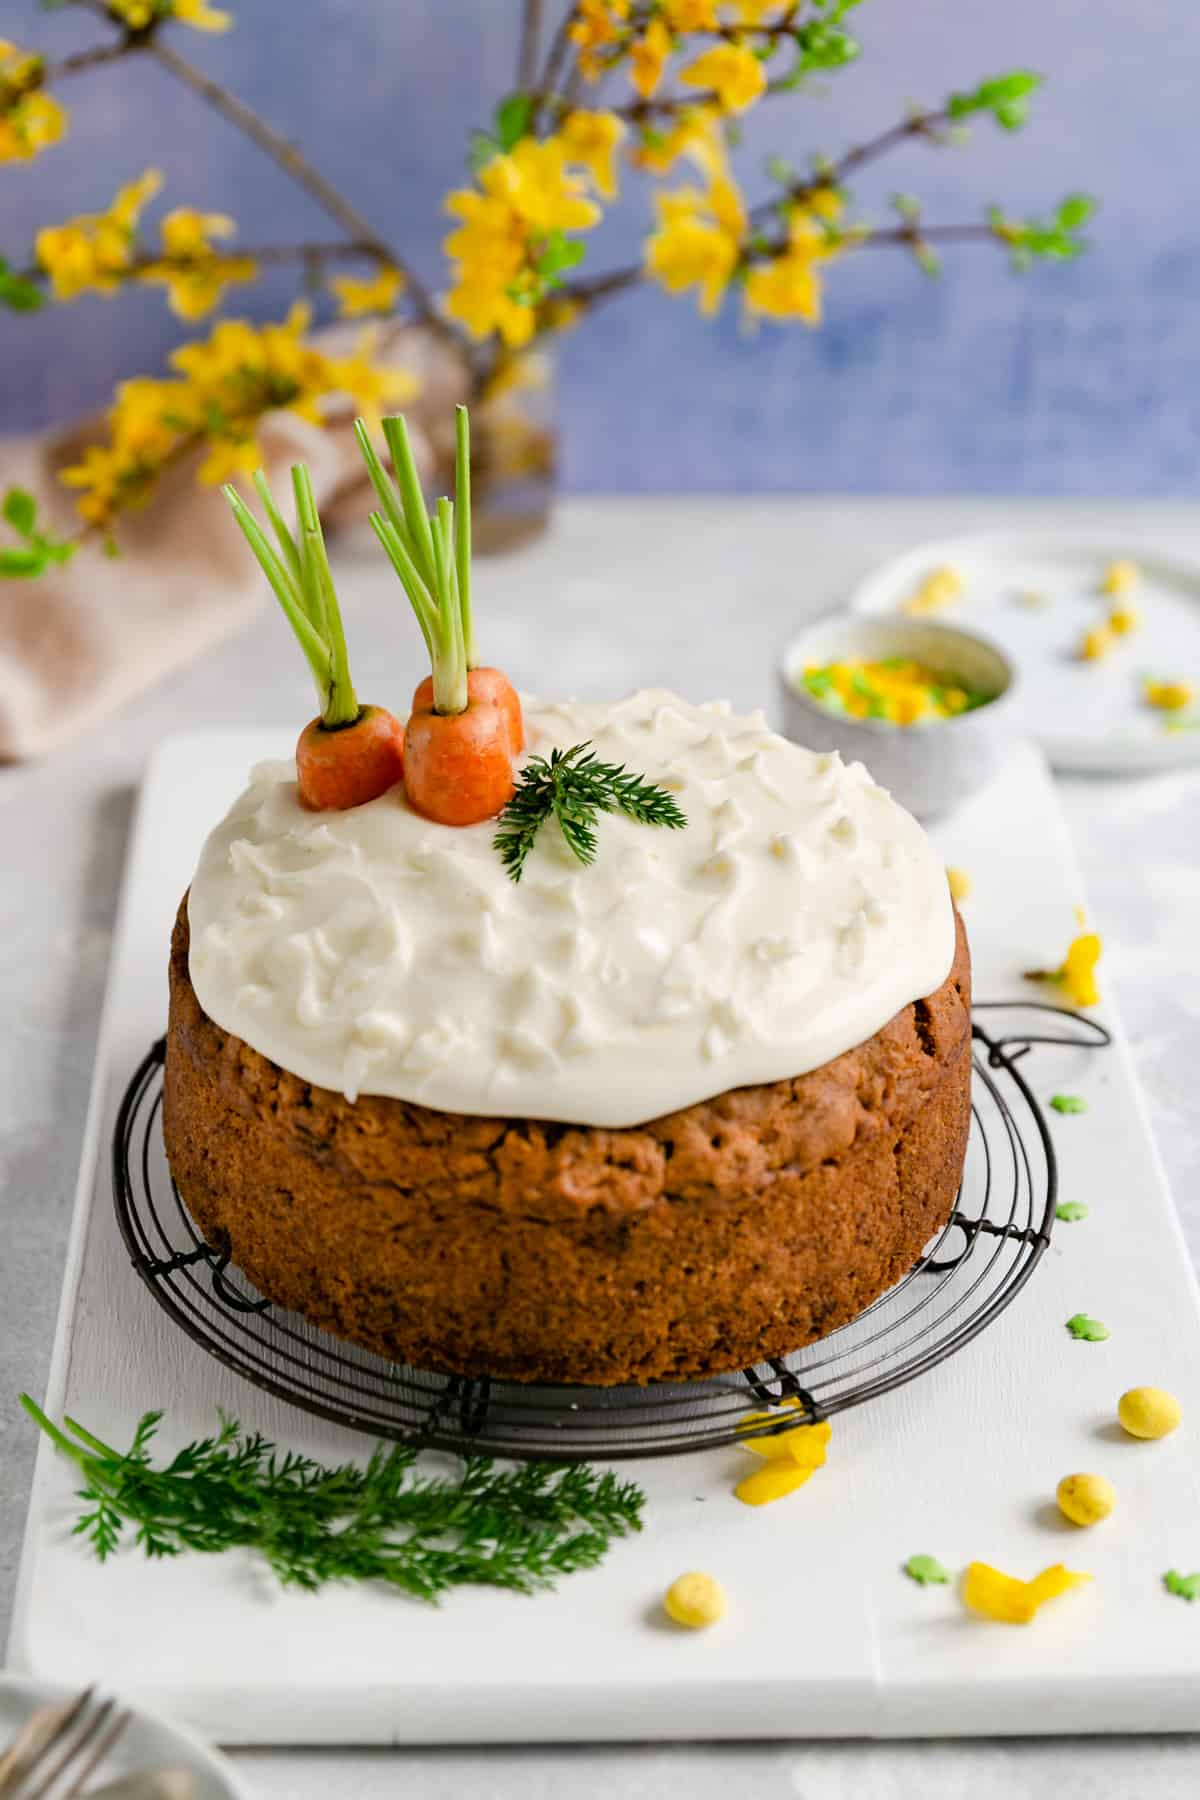 45 degree angle shot of the easy vegan carrot cake on a round metal cooling rack with some yellow flowers in the background